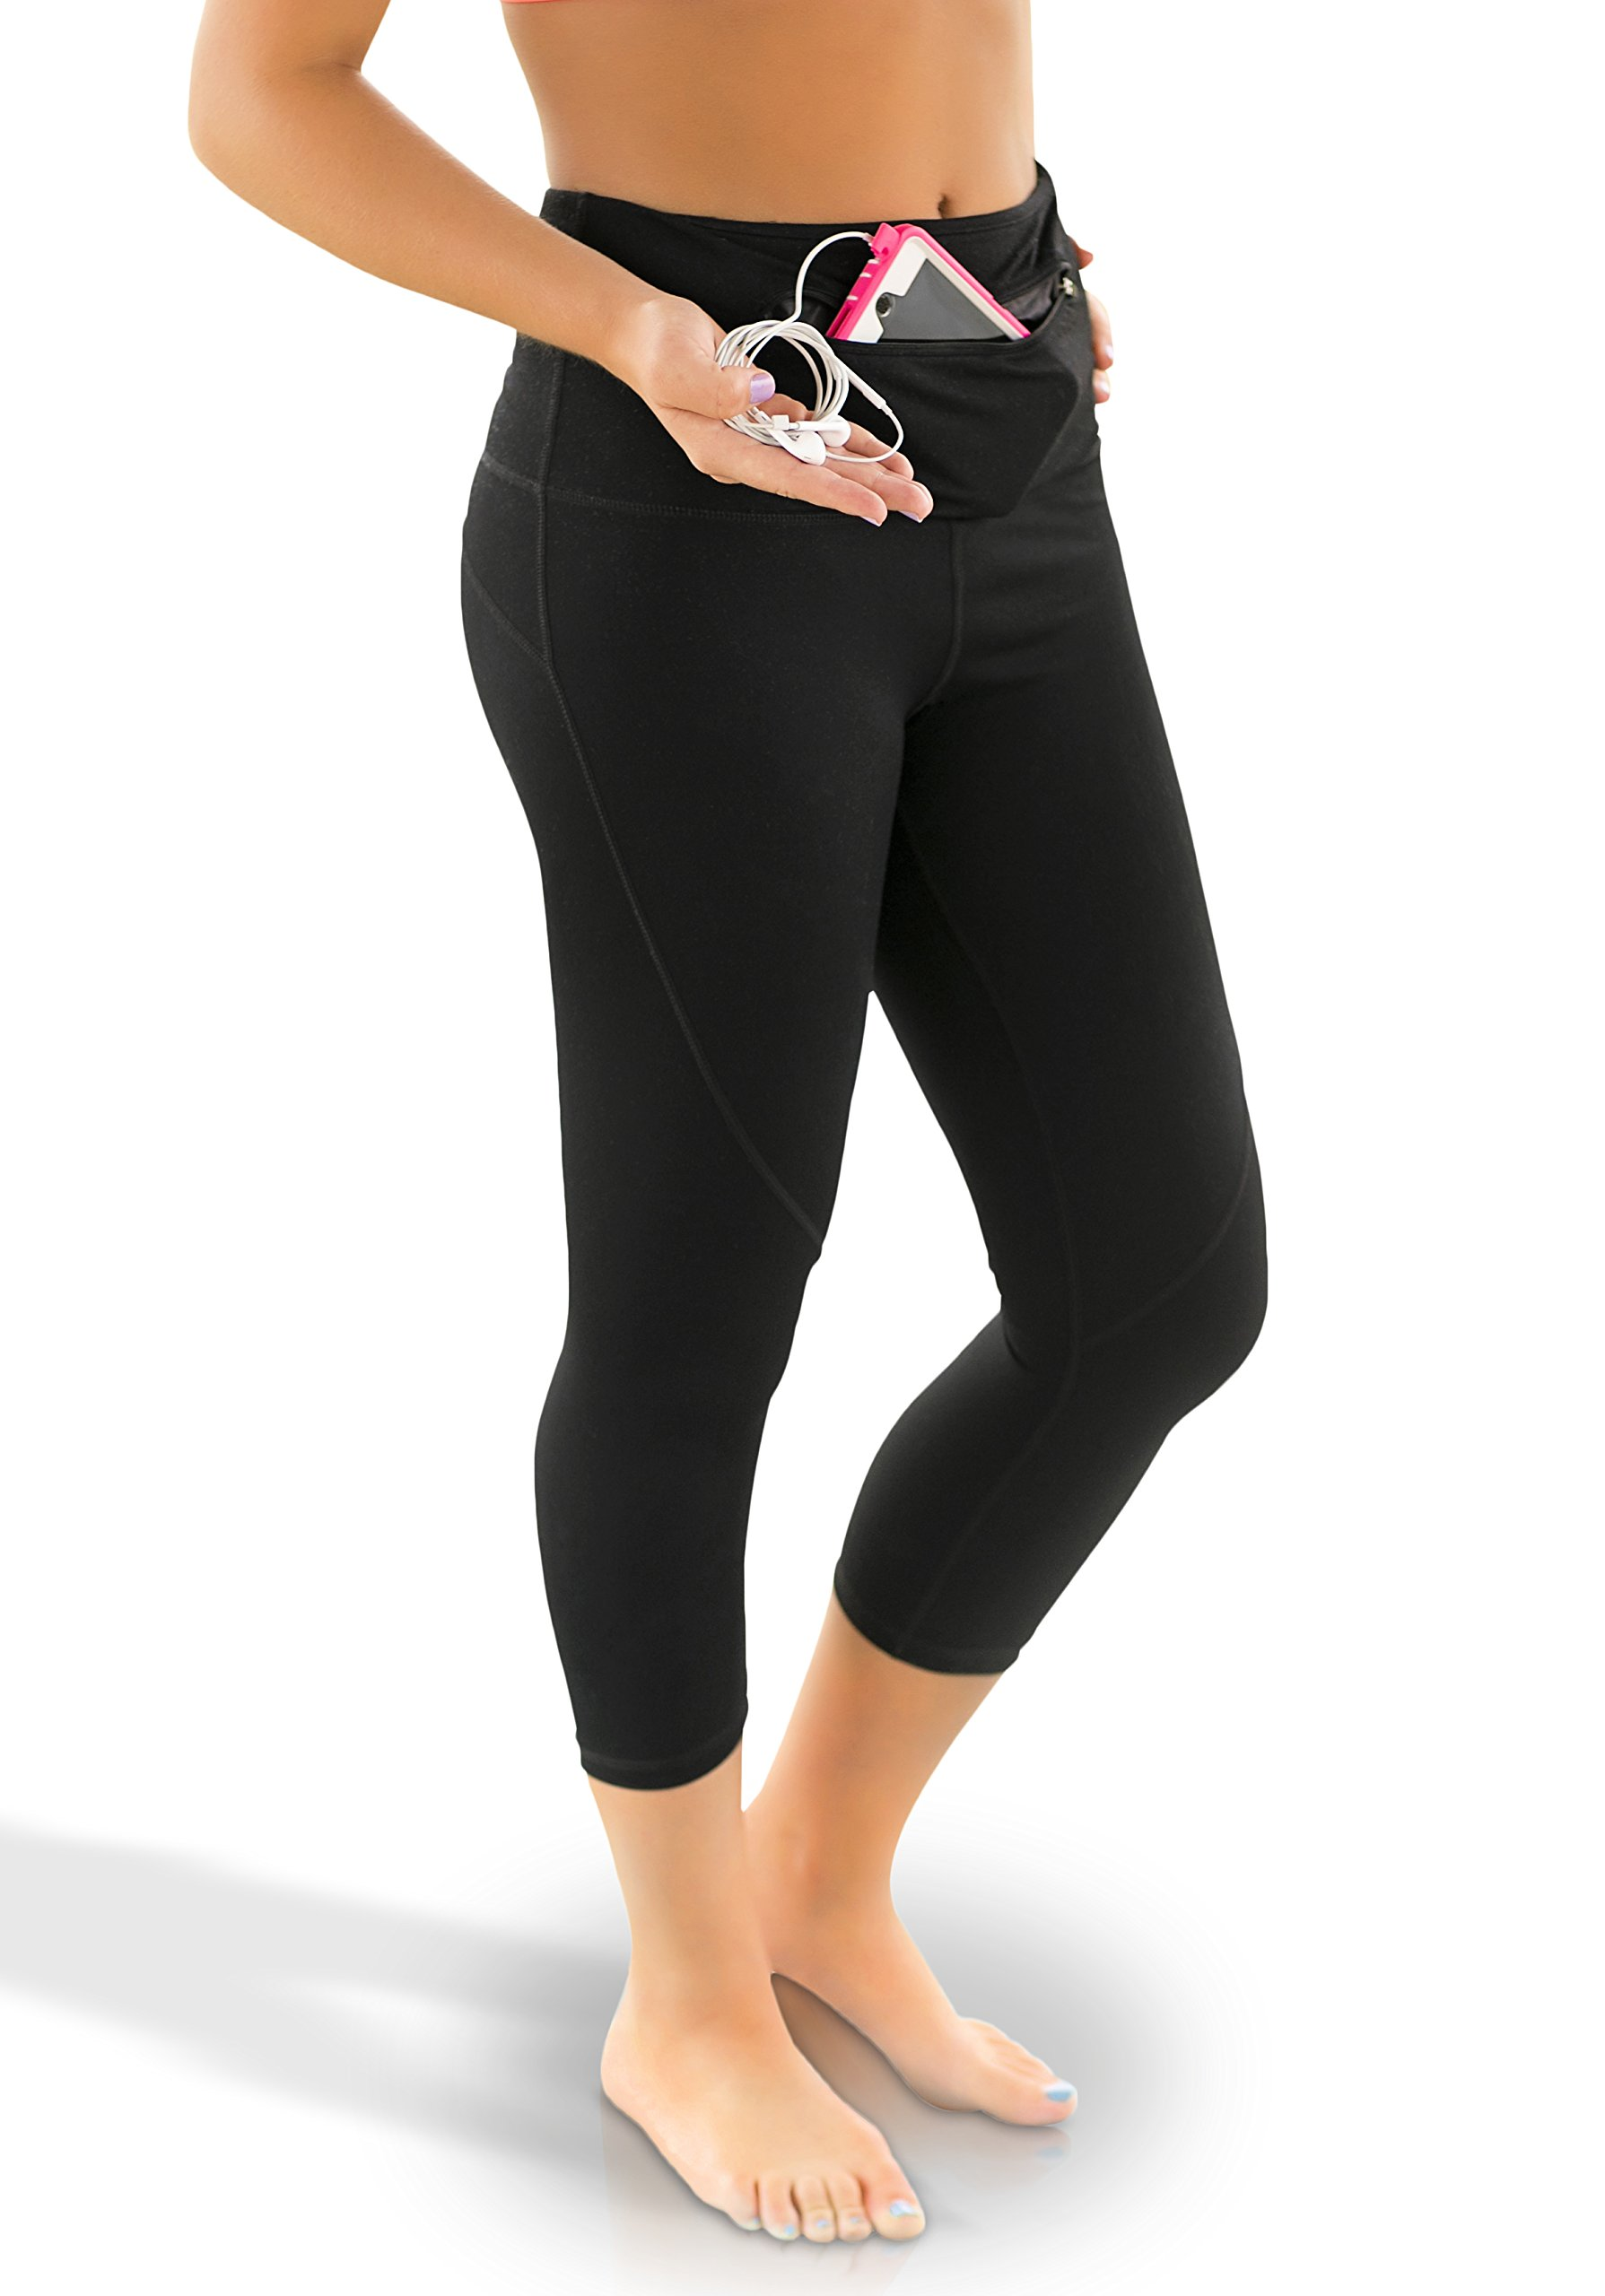 08210dbb93ce Best Rated in Women s Running Tights   Helpful Customer Reviews ...